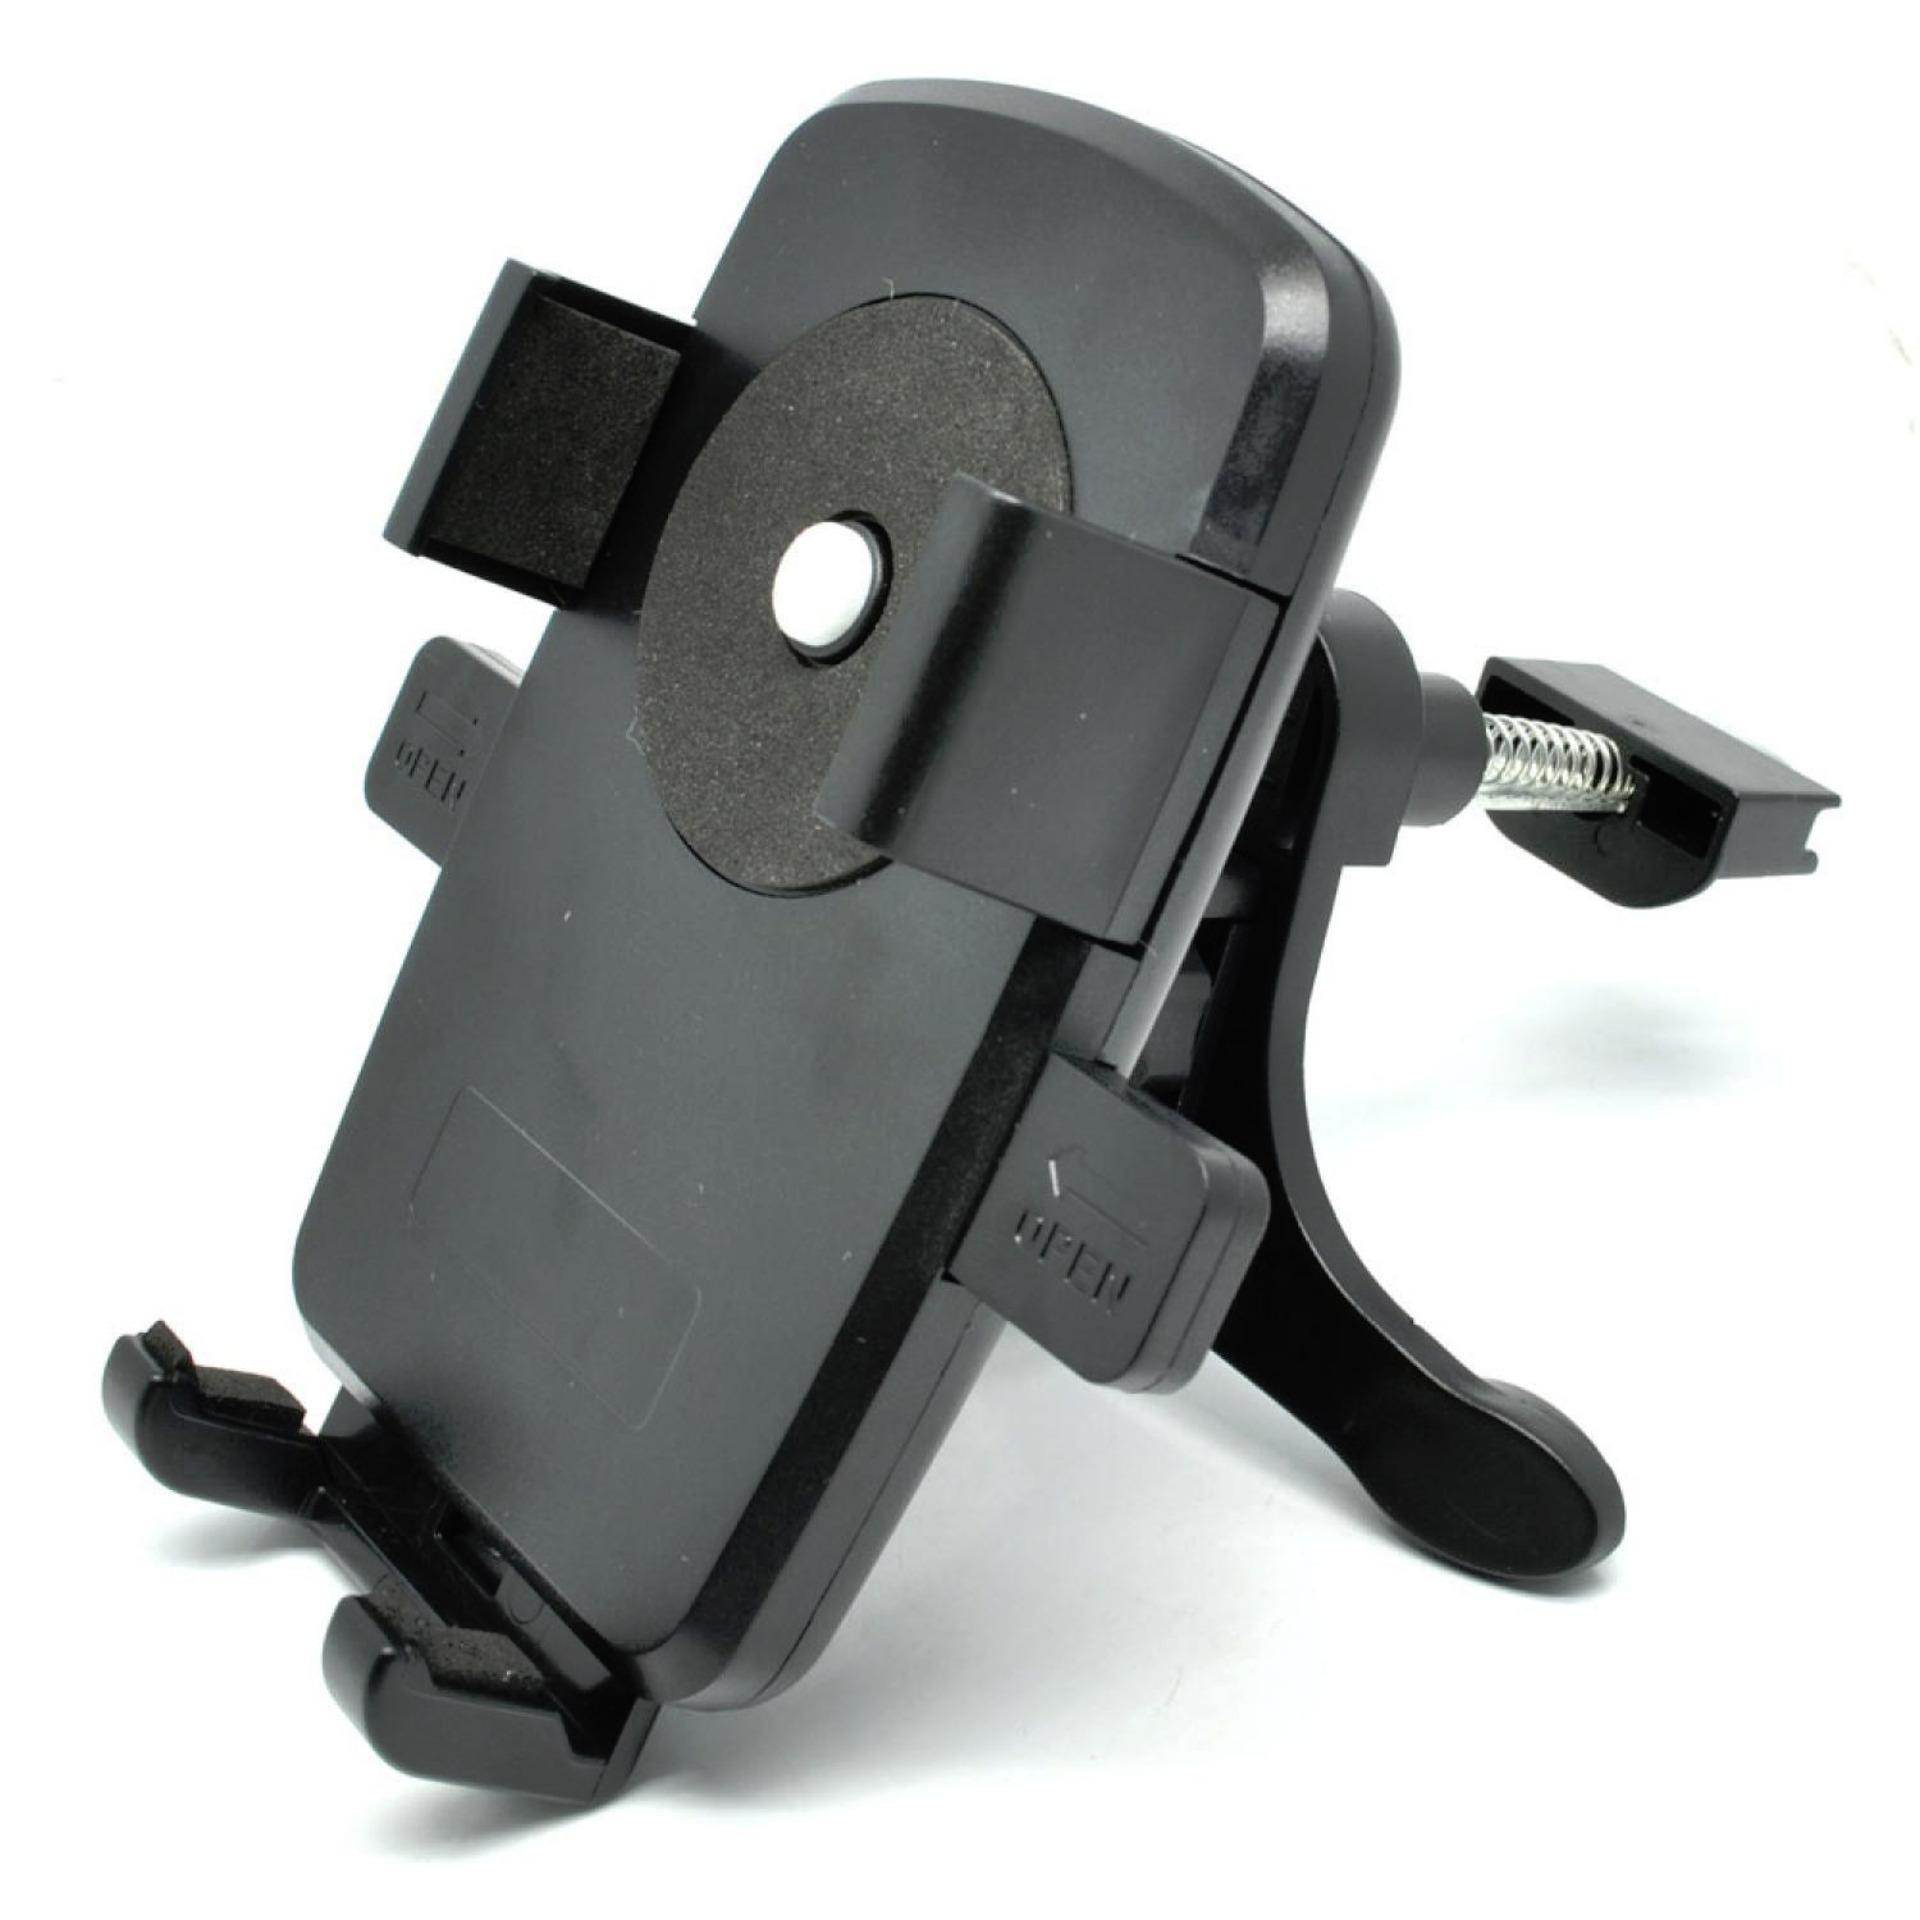 Jual Beli Universal Mobile Phone Car Holder Air Vent